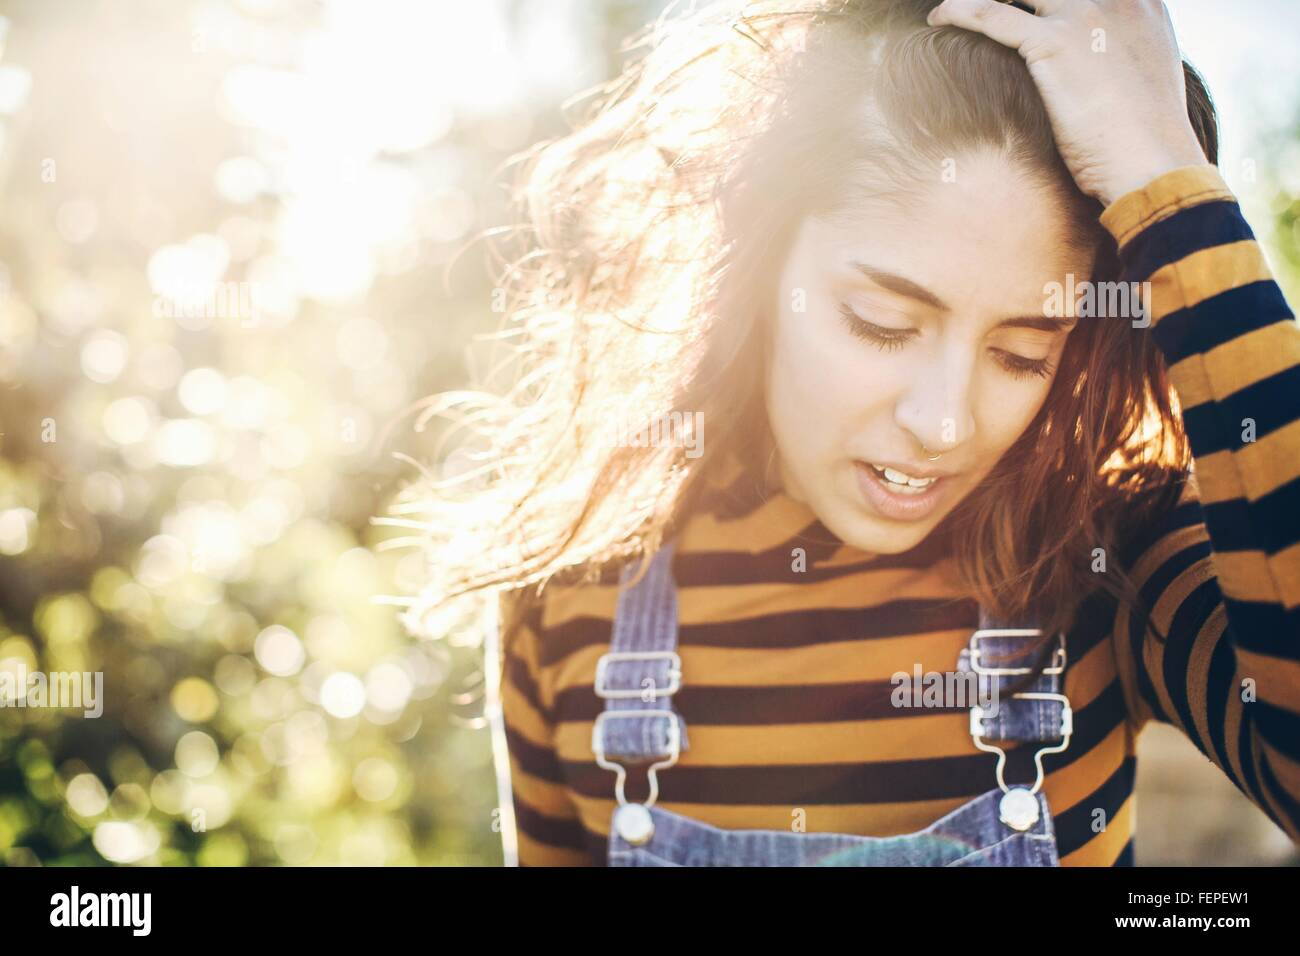 Young woman in rural environment, running fingers through hair - Stock Image